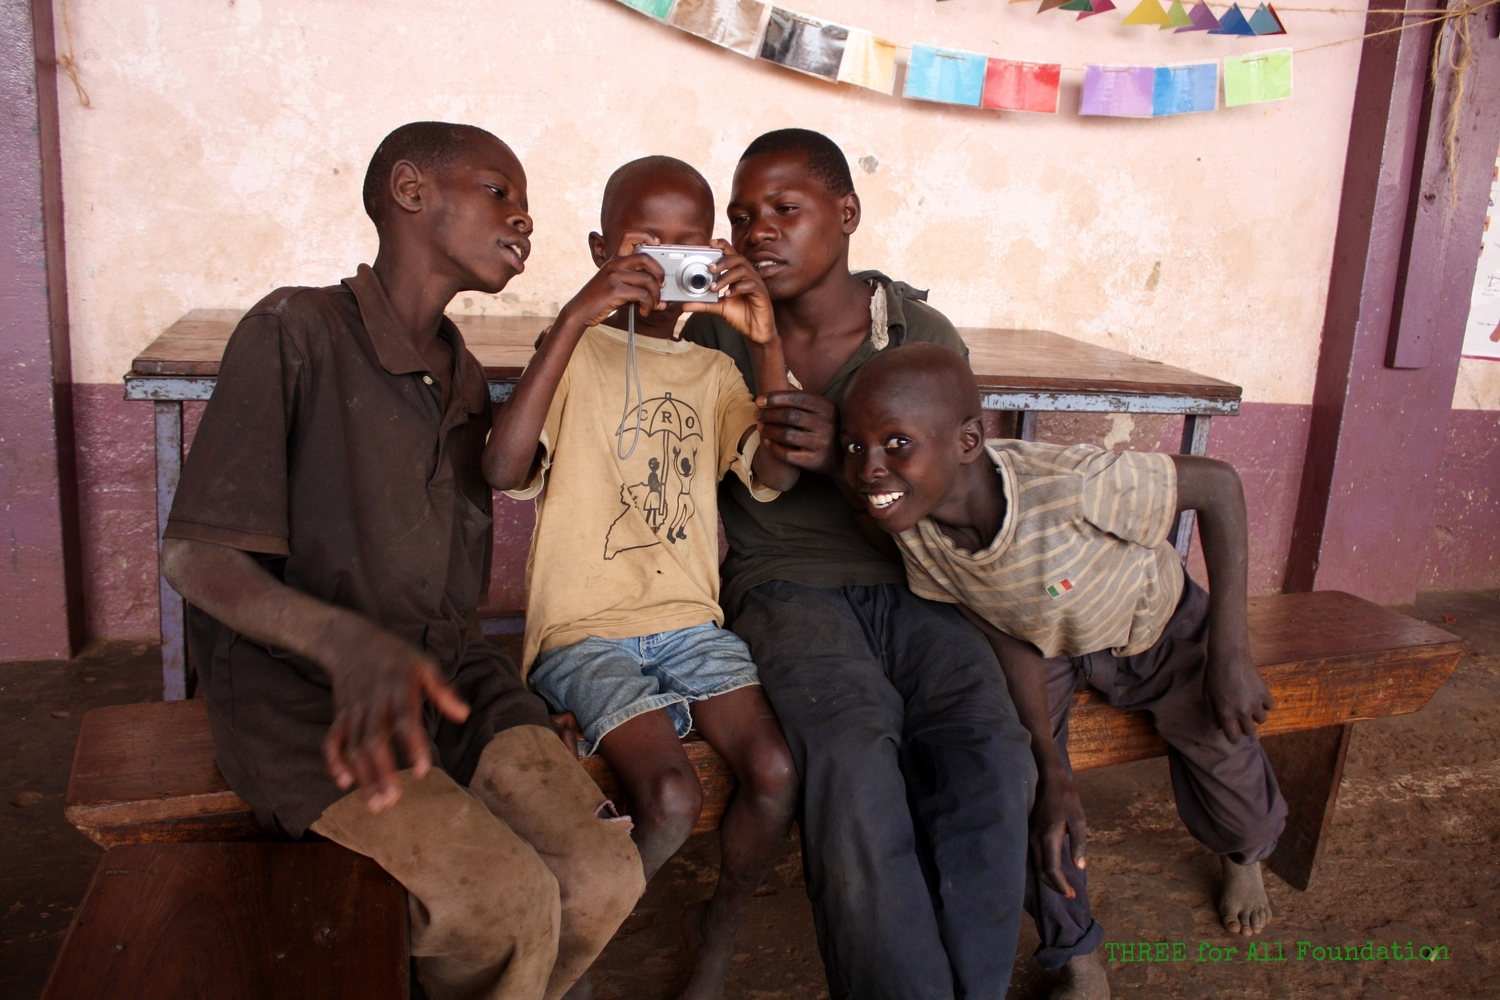 Many of these photographs were taken by children who worked with us over several days to share their stories. These photos and stories are incorporated in to advocacy materials that aim to shift attitudes towards street children in Uganda.